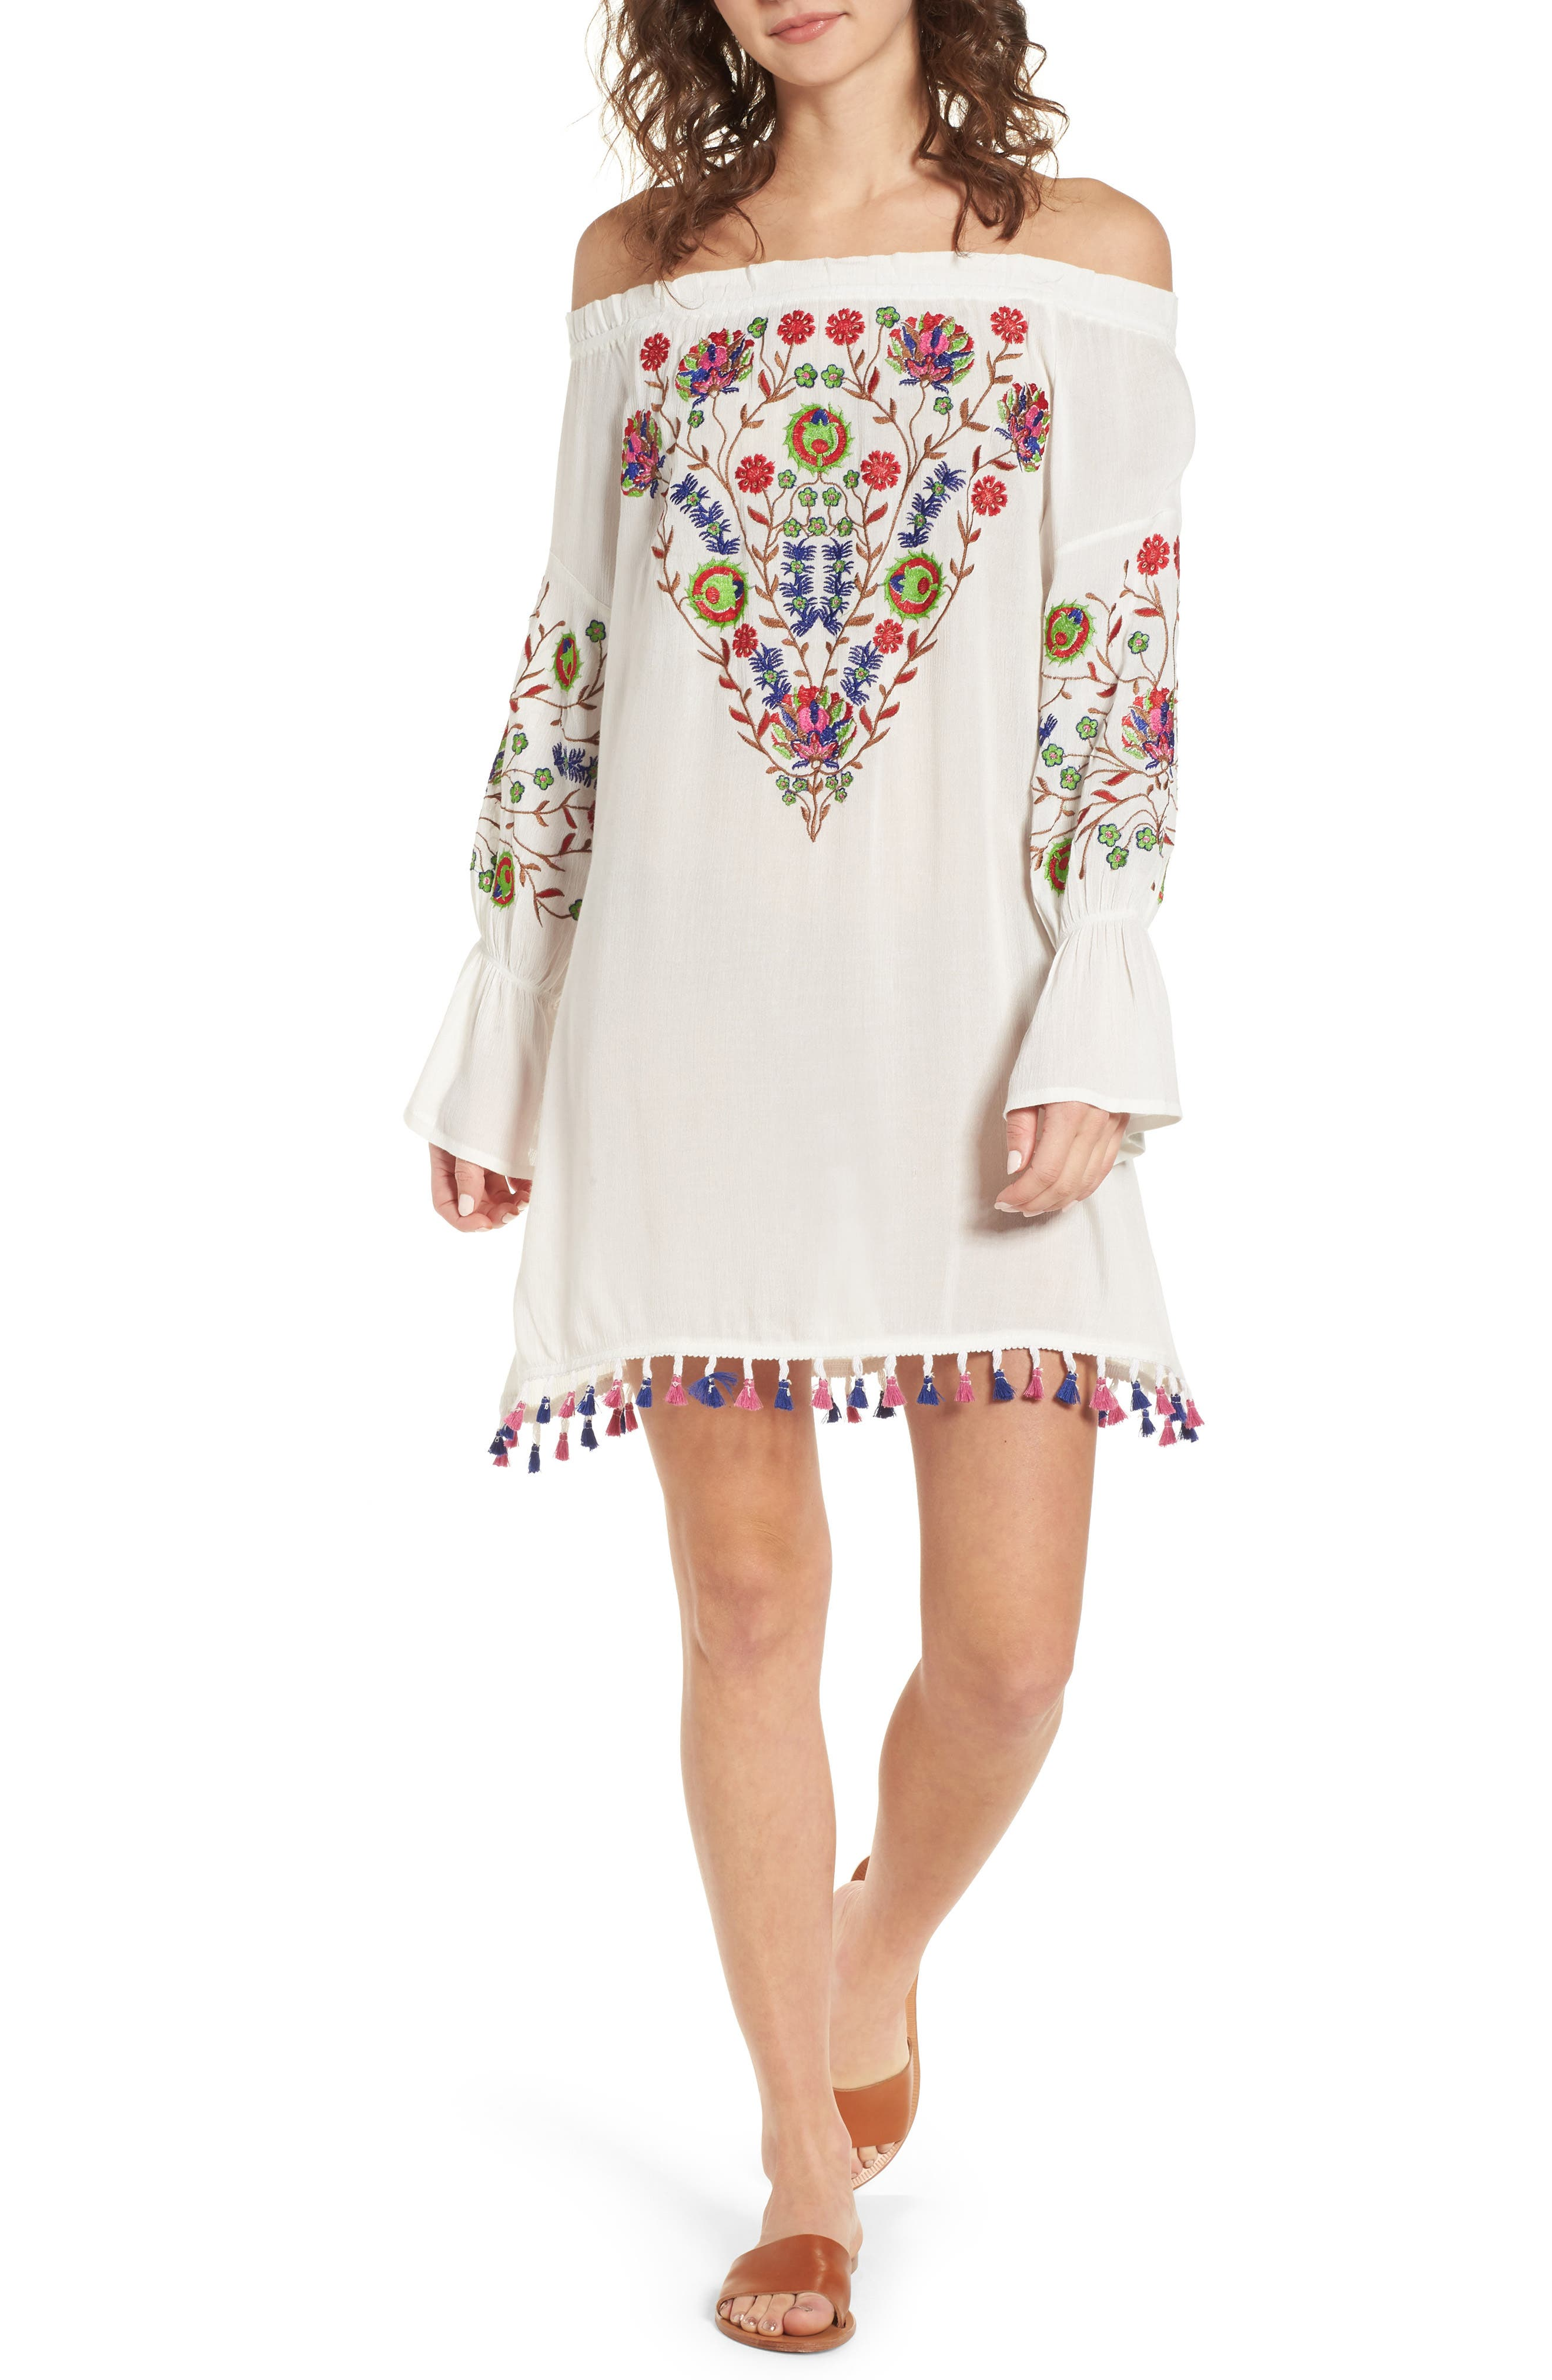 Raga Wildflower Embroidered Off the Shoulder Dress